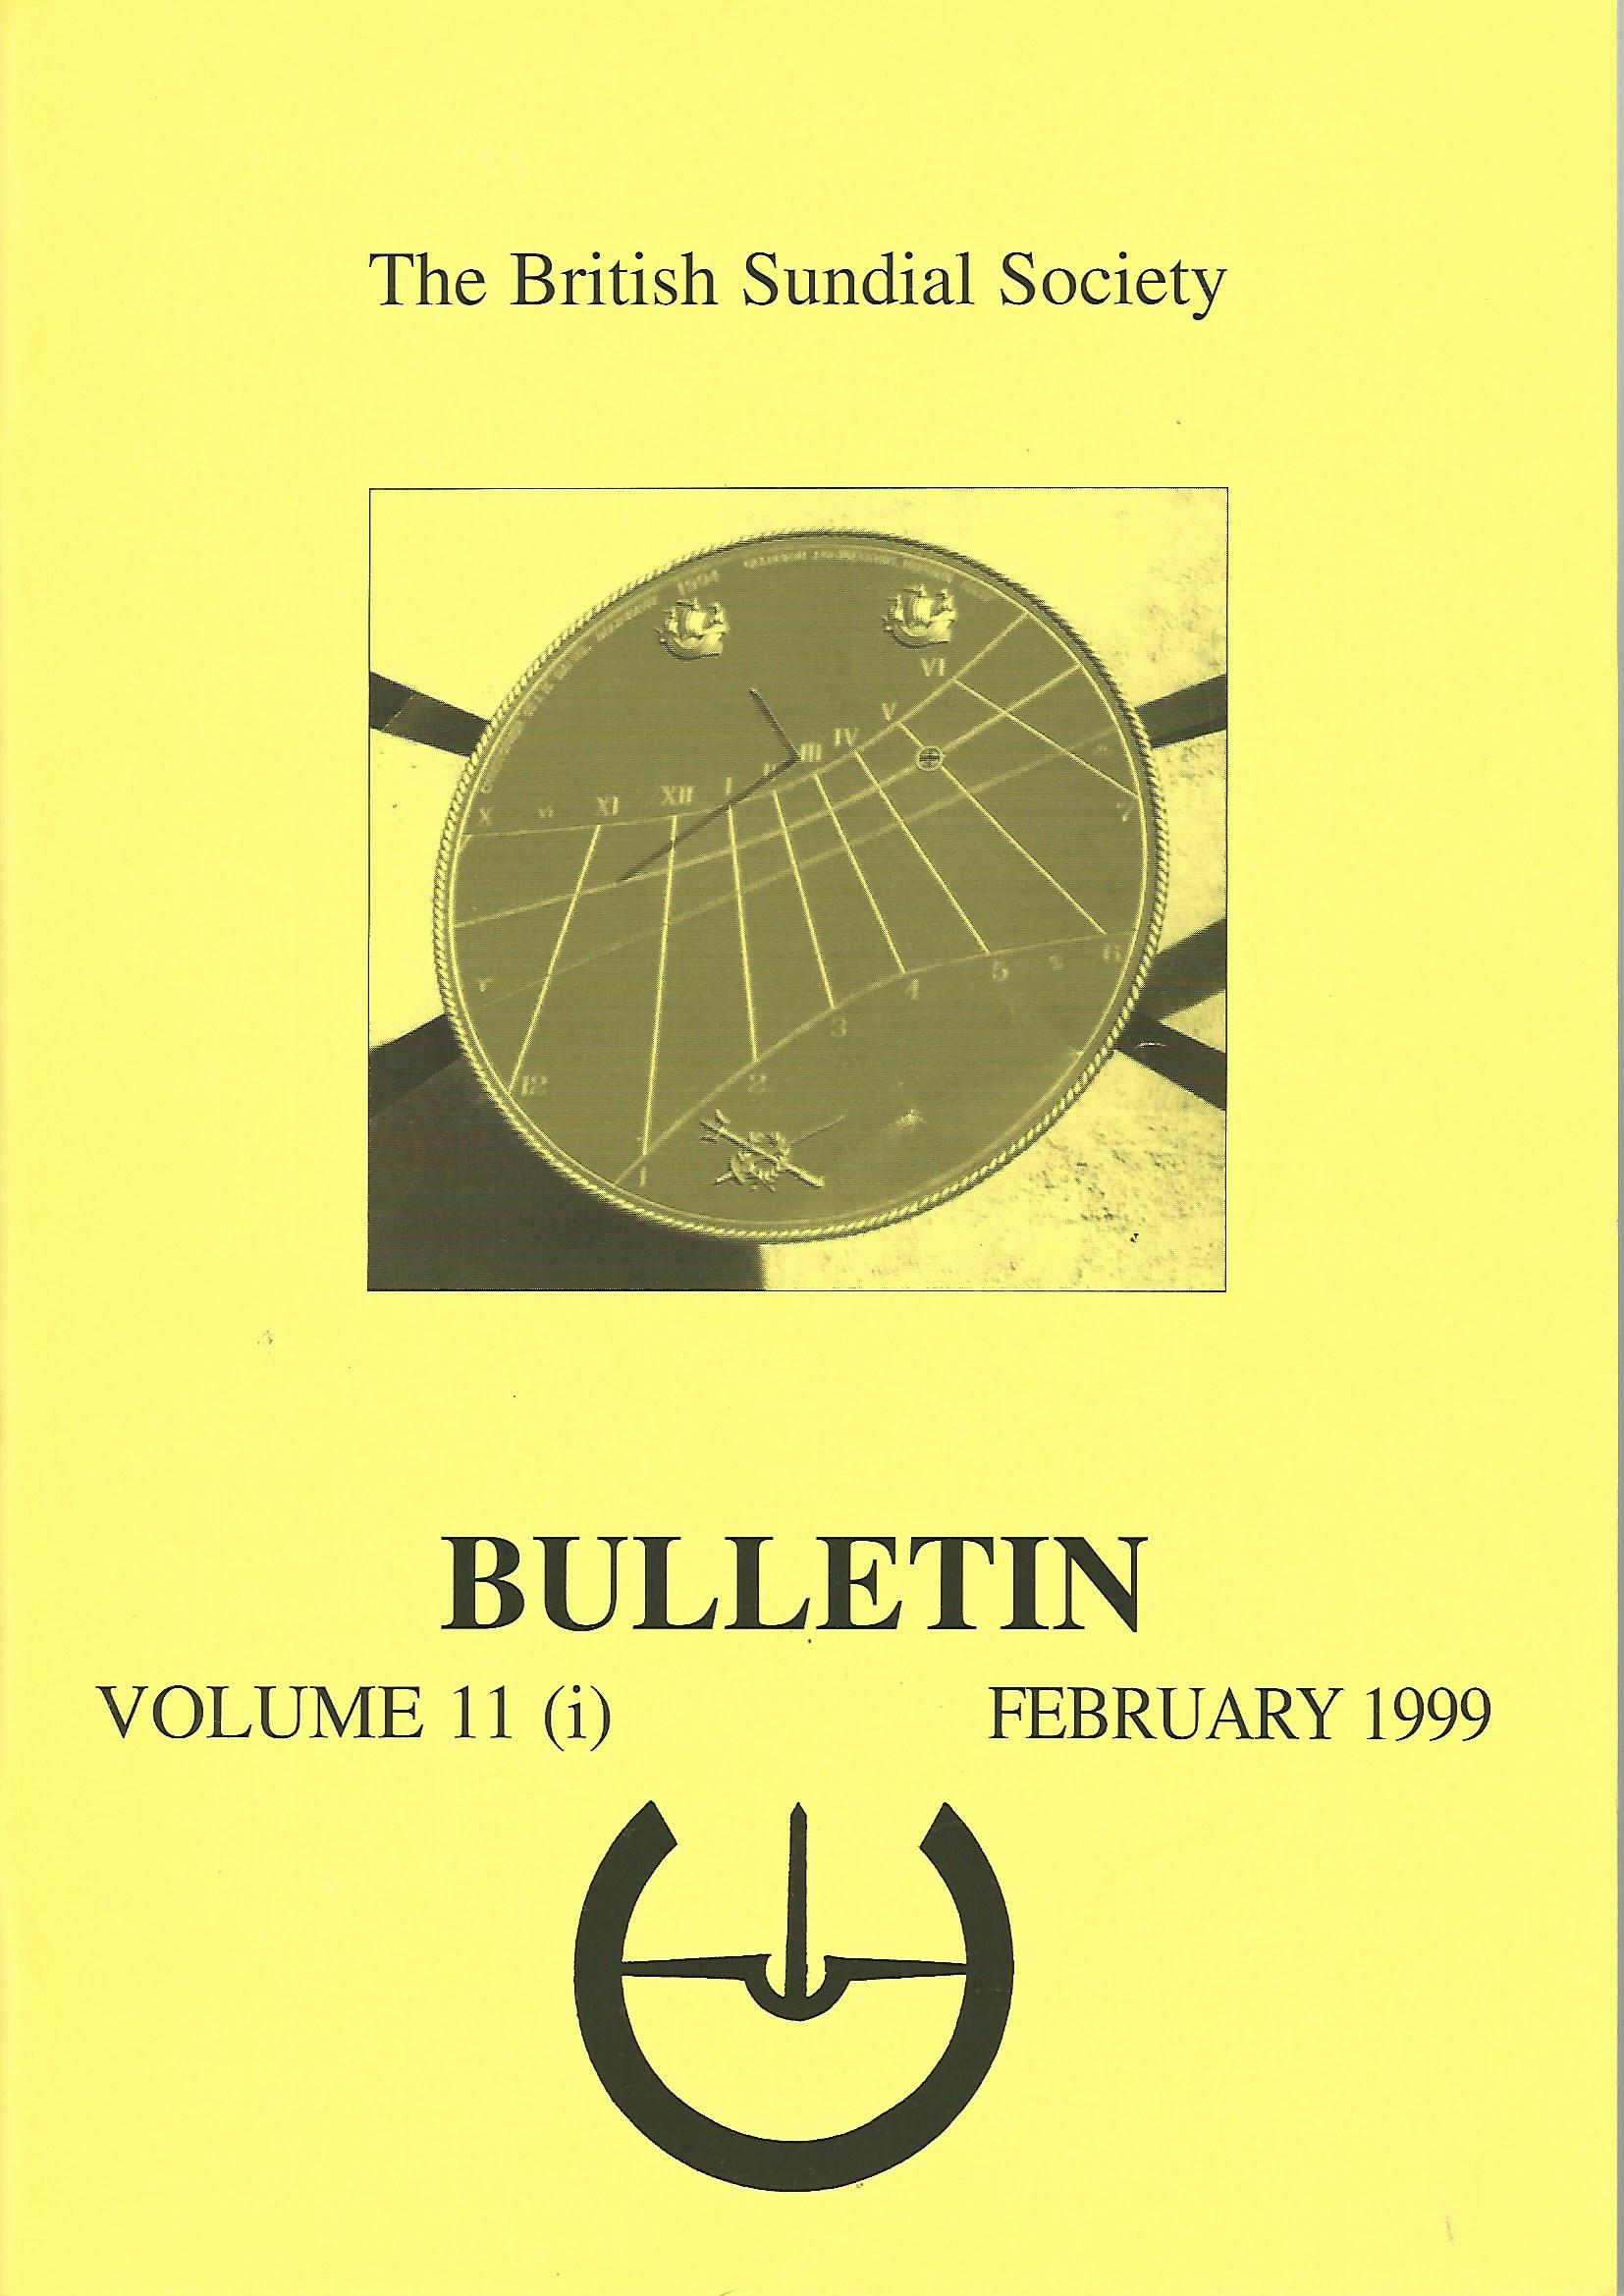 Image for The British Sundial Society Bulletin Volume 11 (i)